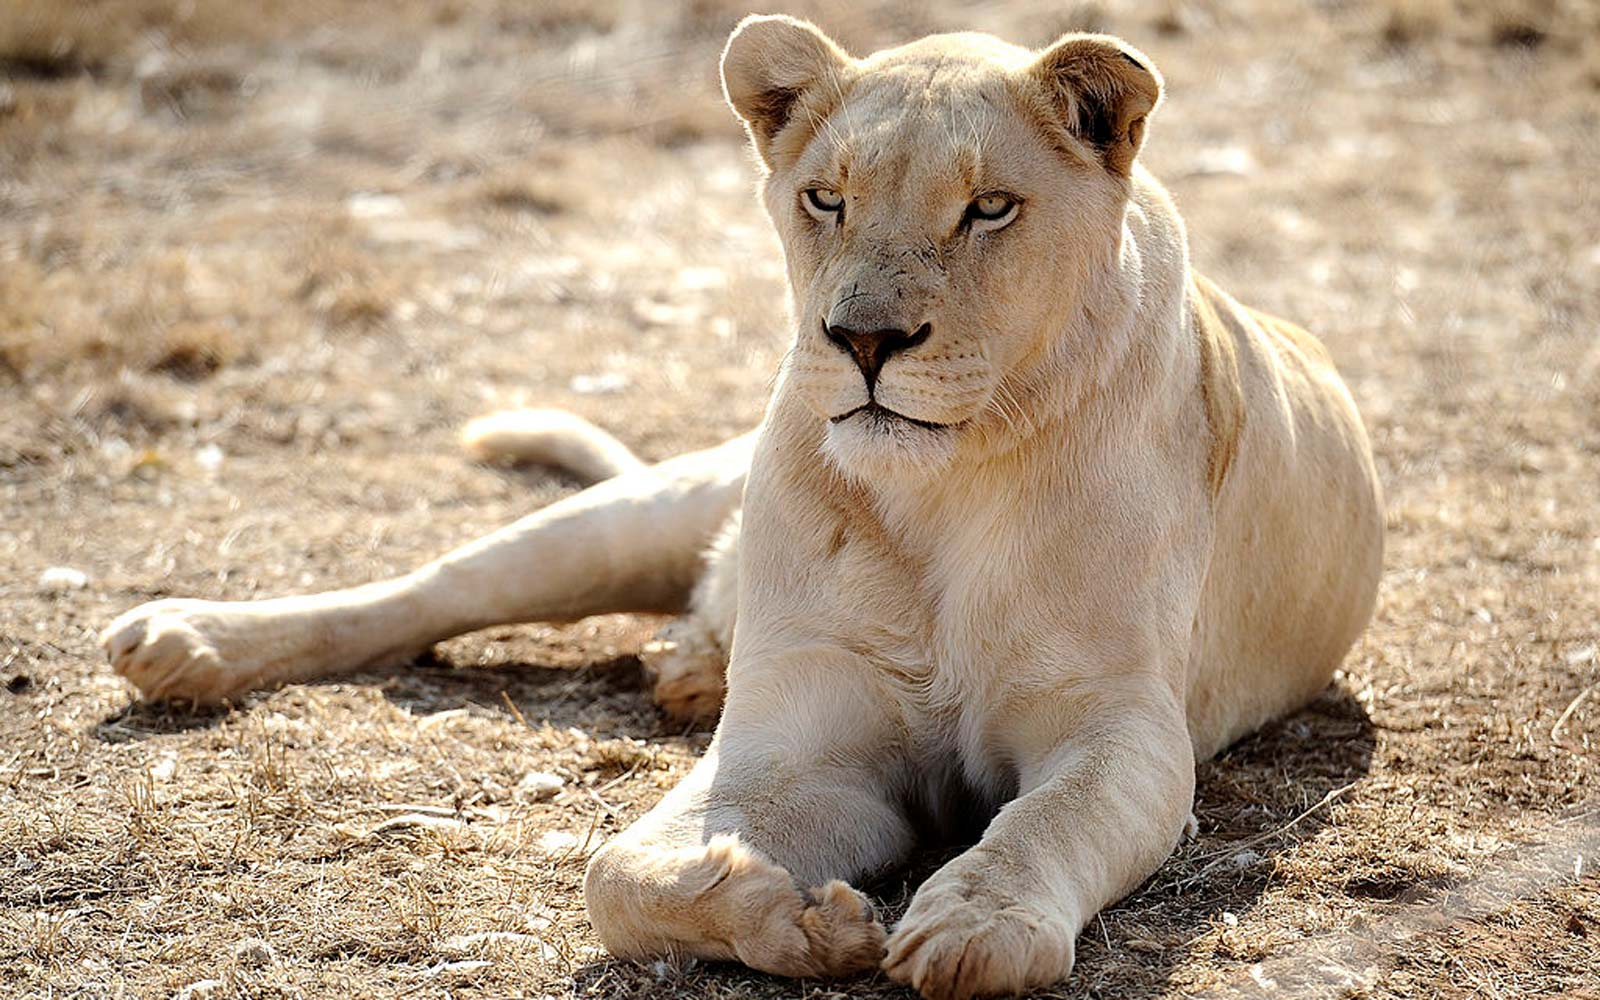 4-year-old Girl Fighting for Her Life After Lion Claws Her at Big Cat Farm